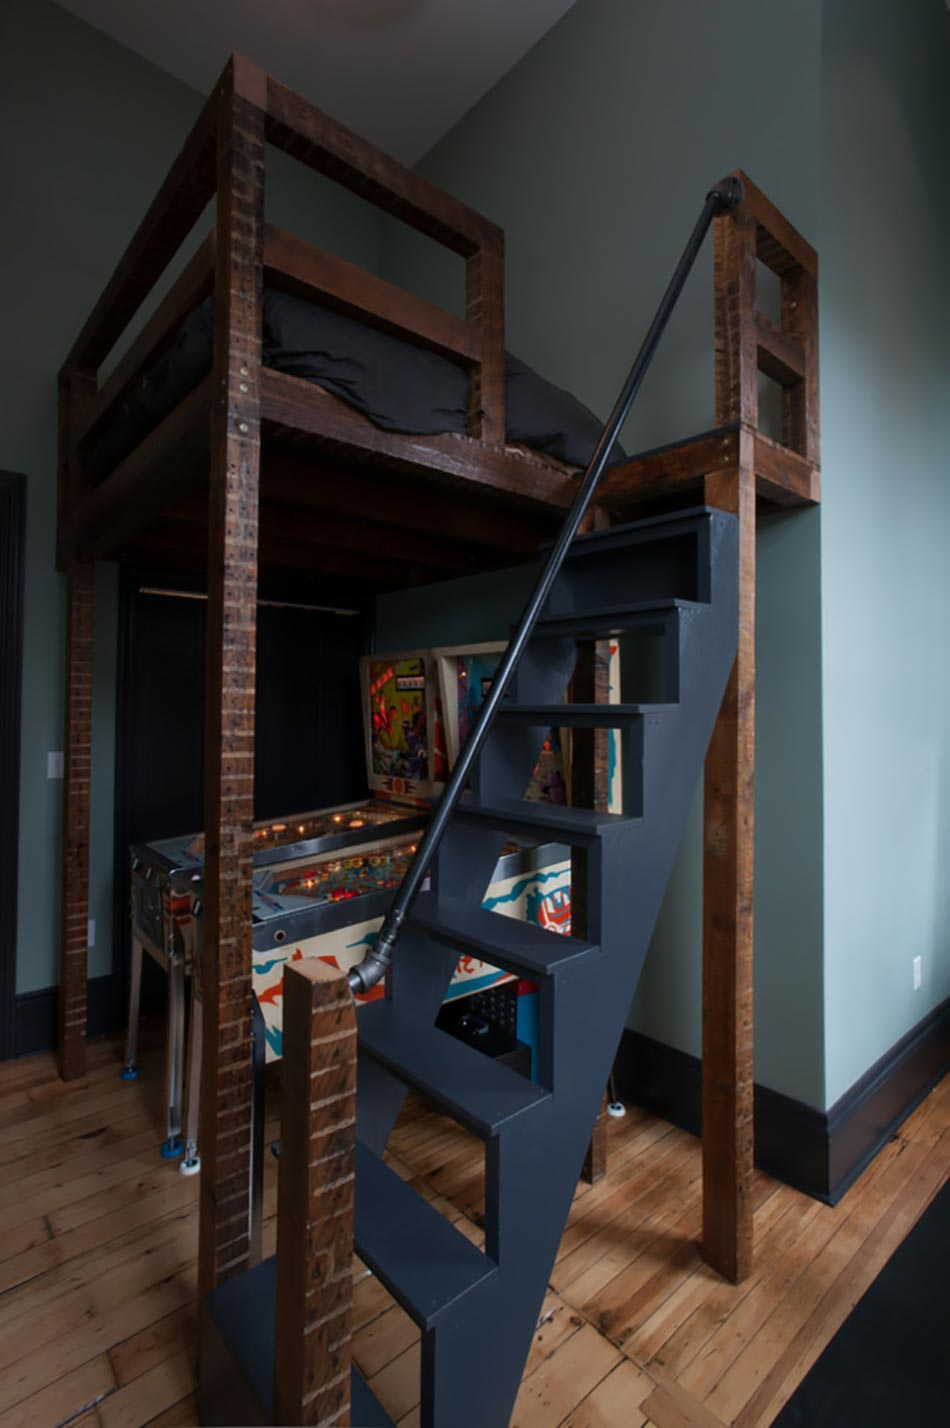 lit mezzanine pour une chambre d ado originale design feria. Black Bedroom Furniture Sets. Home Design Ideas